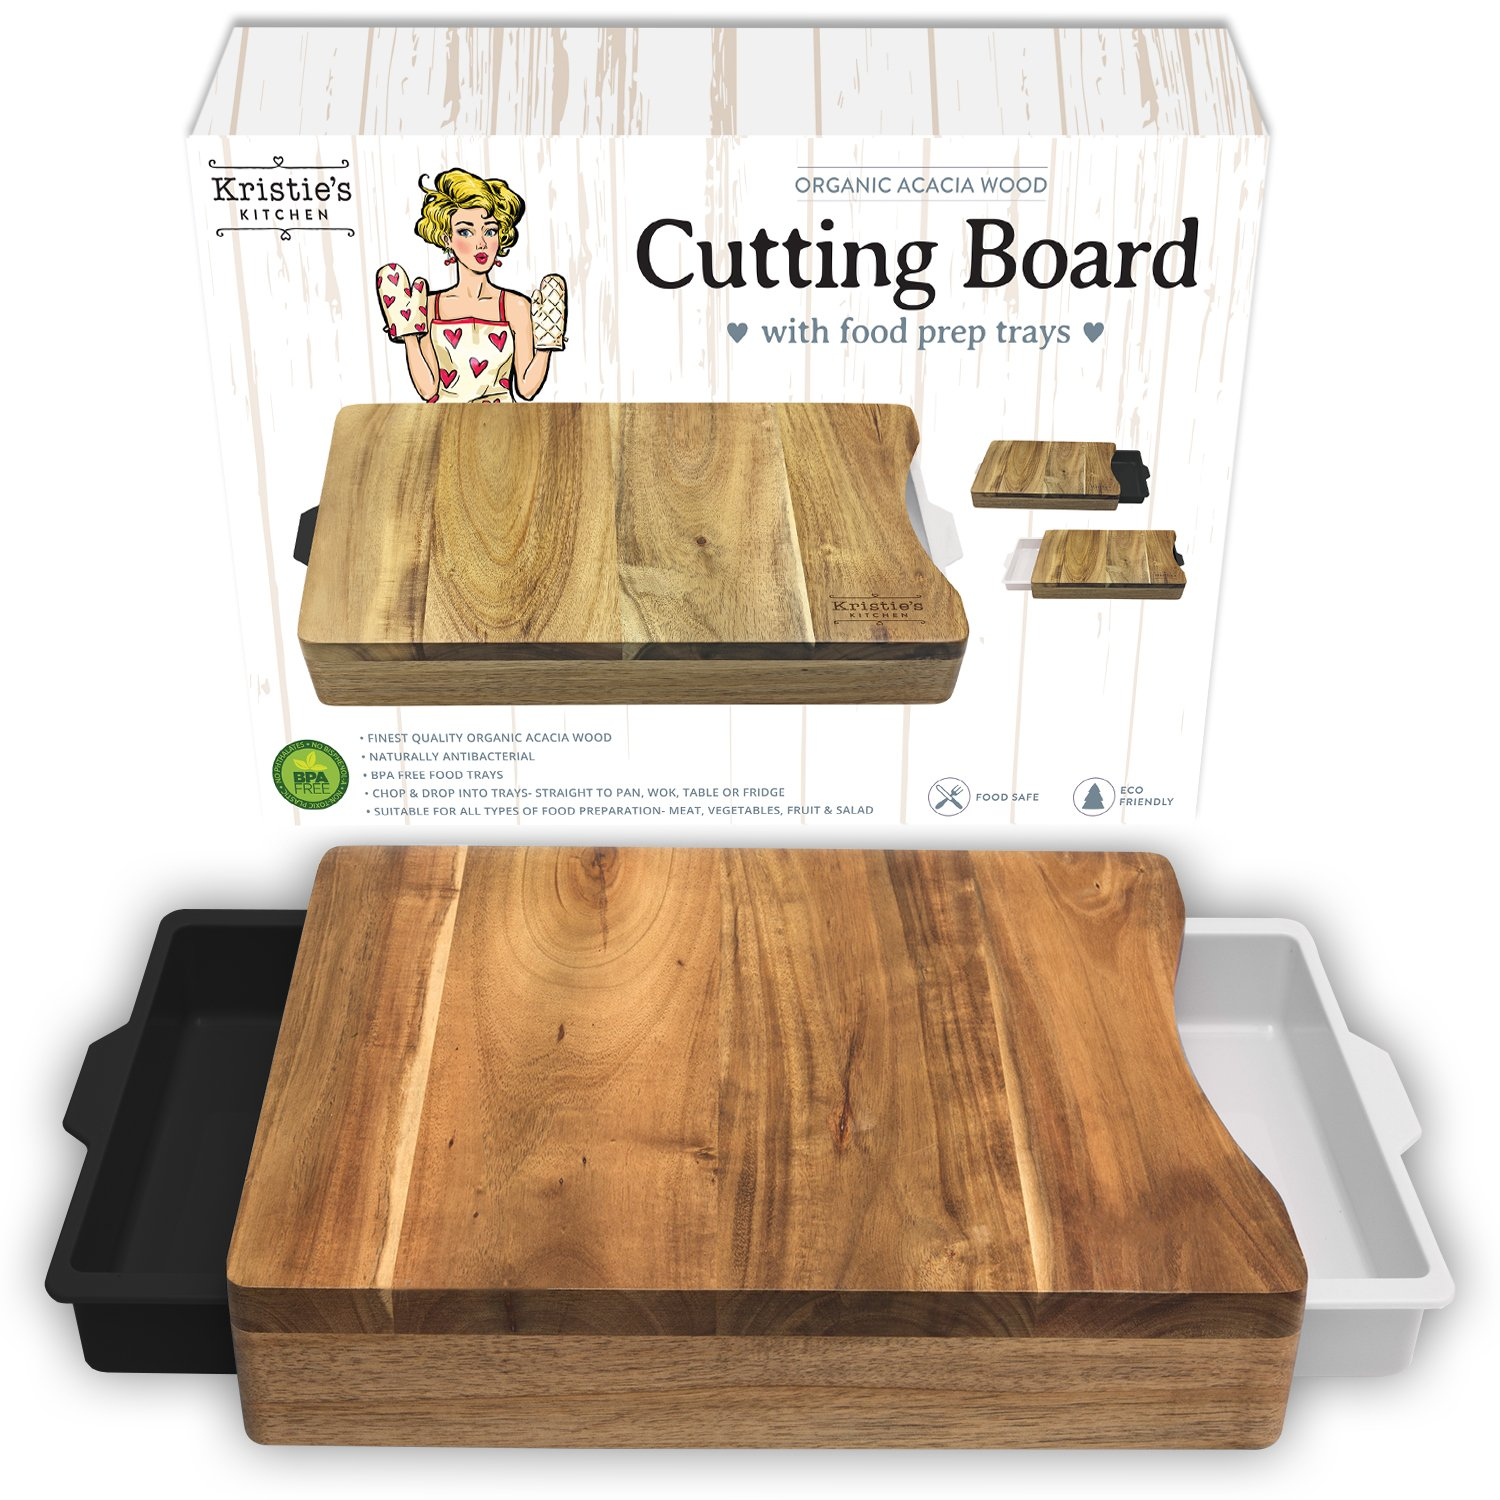 Cutting Board with Trays - Cutting Board with Containers White Black - Organic Acacia Wood Cutting Boards